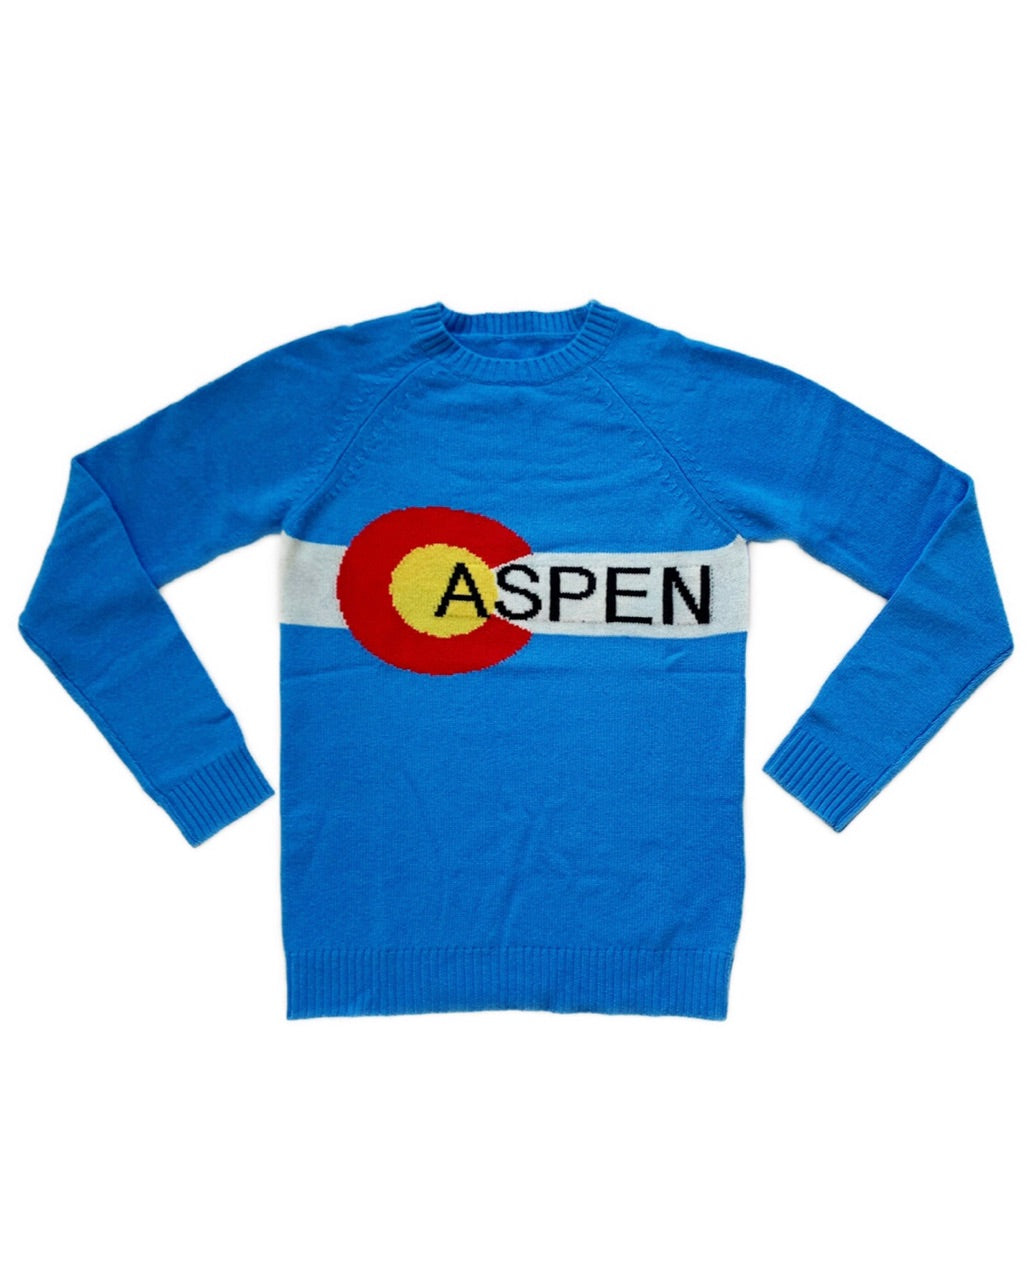 Aspen Colorado Sweater